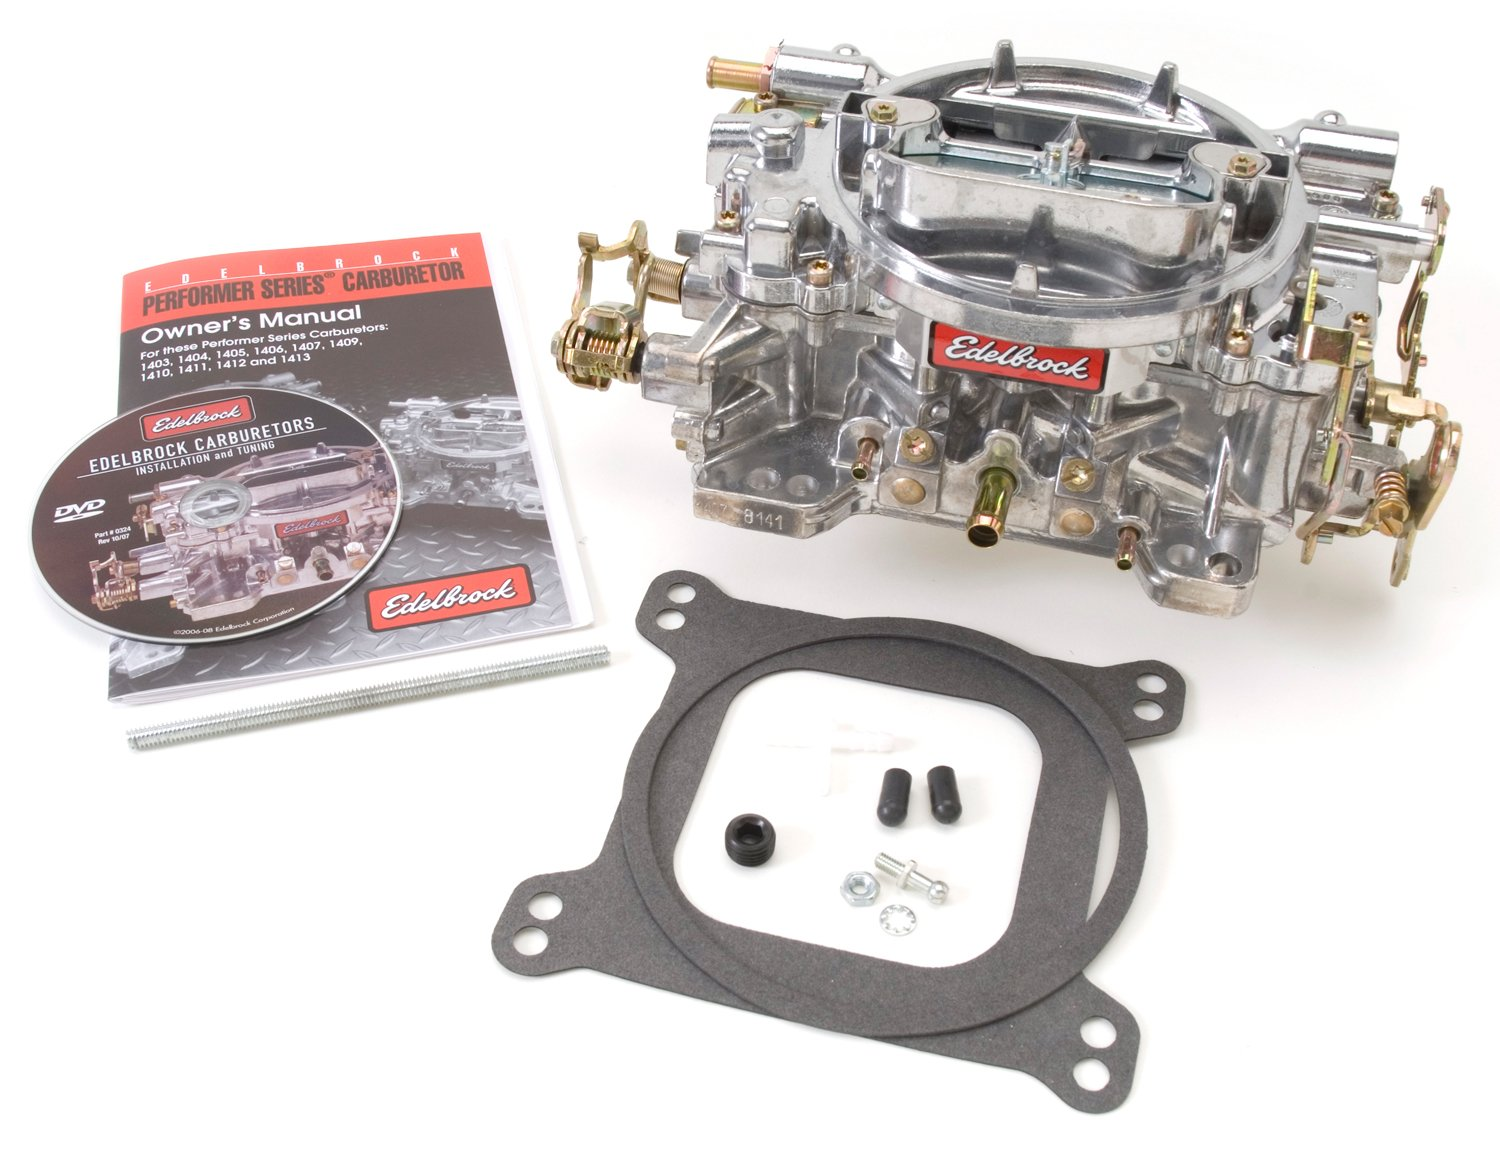 Edelbrock 1407 Performer 750 CFM Square Bore 4-Barrel Air Valve Secondary Manual Choke New Carburetor by Edelbrock